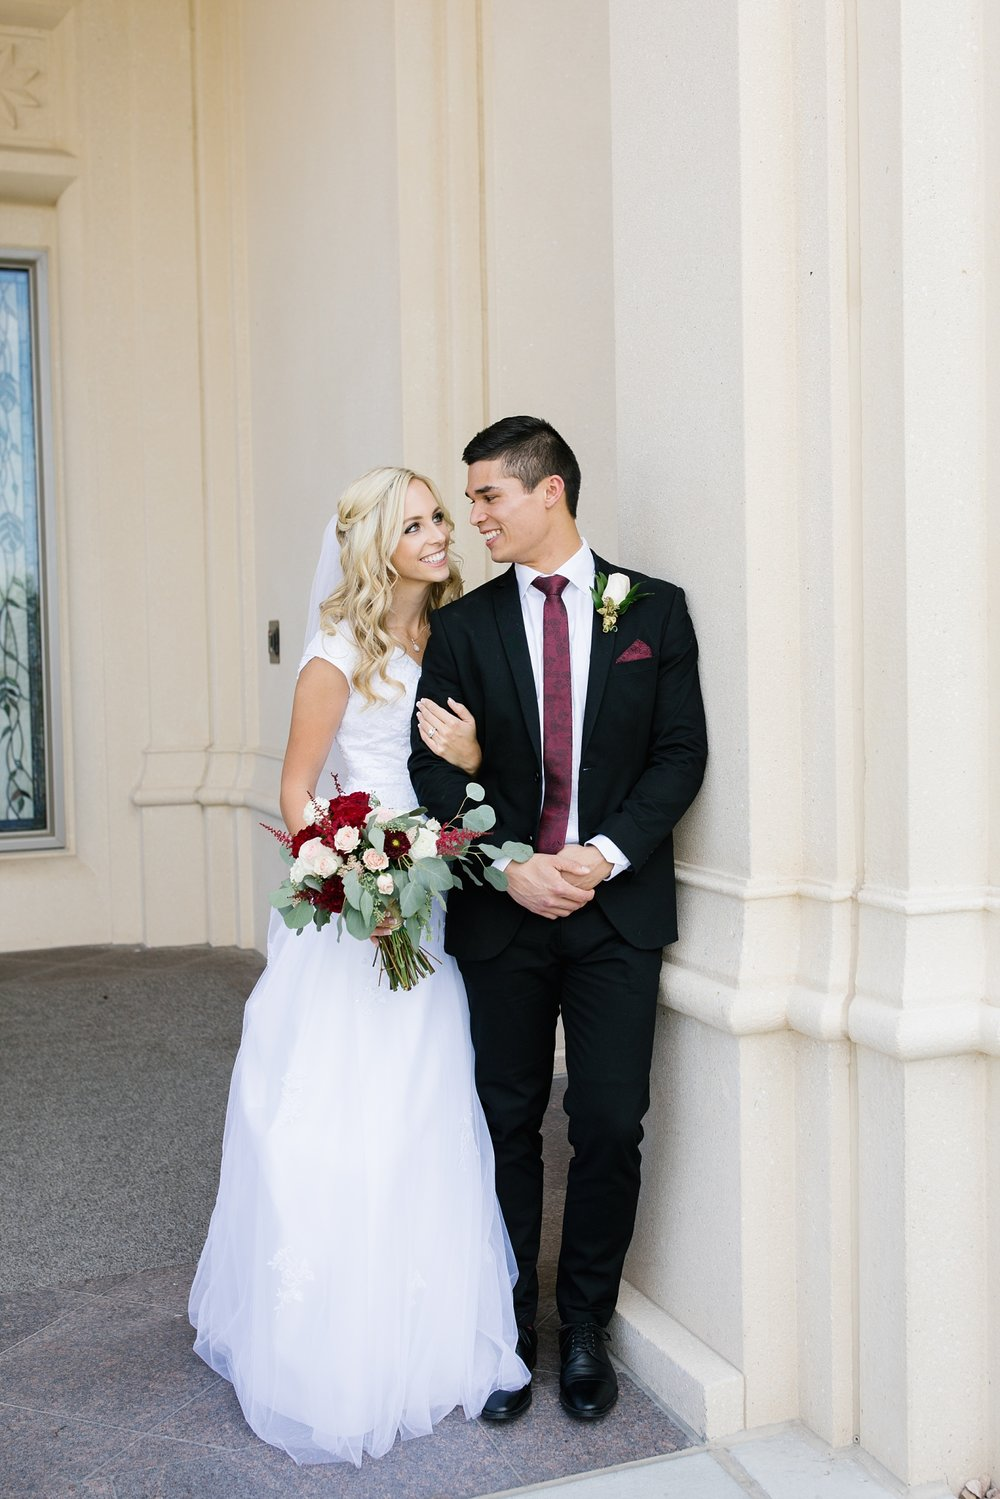 HannahChaseWedding-133_Lizzie-B-Imagery-Utah-Wedding-Photographer-Bridal-Photography-Payson-Utah-Temple-Clarion-Gardens-Catering-and-Events-Center.jpg